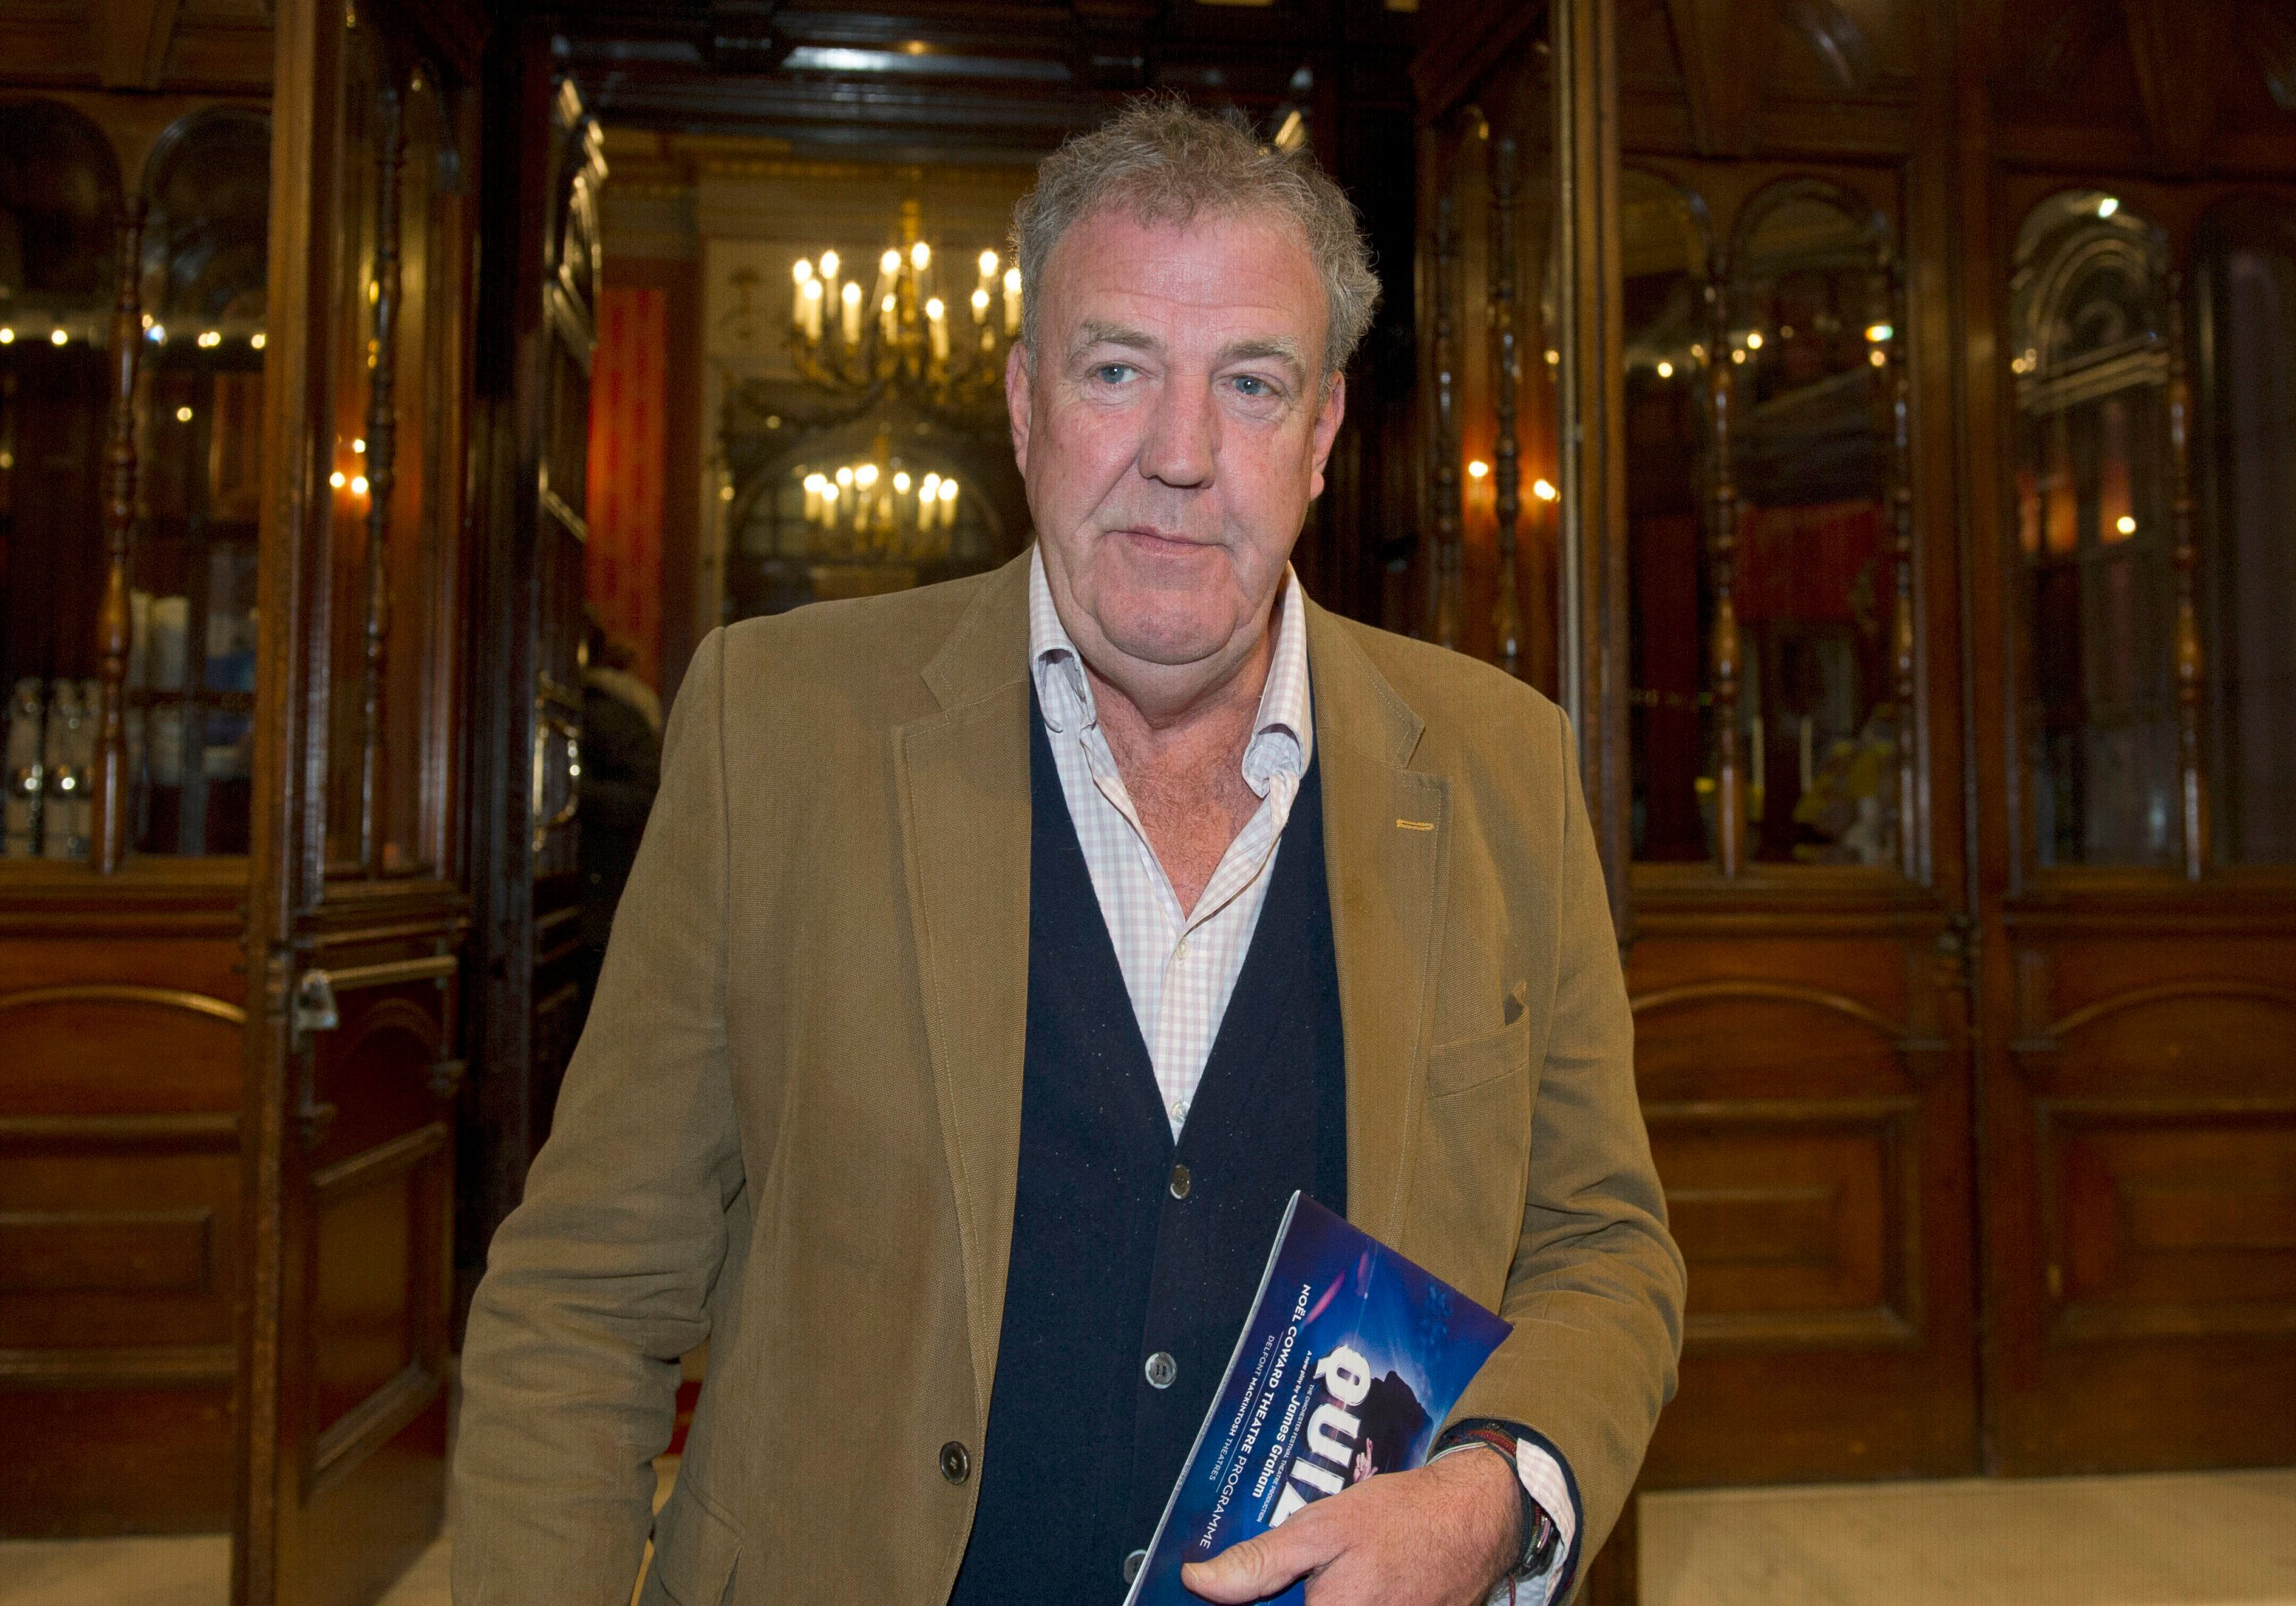 Jeremy Clarkson Accuses 'Up Itself' BBC Of 'Suffocating Life Out Of Everything With Political